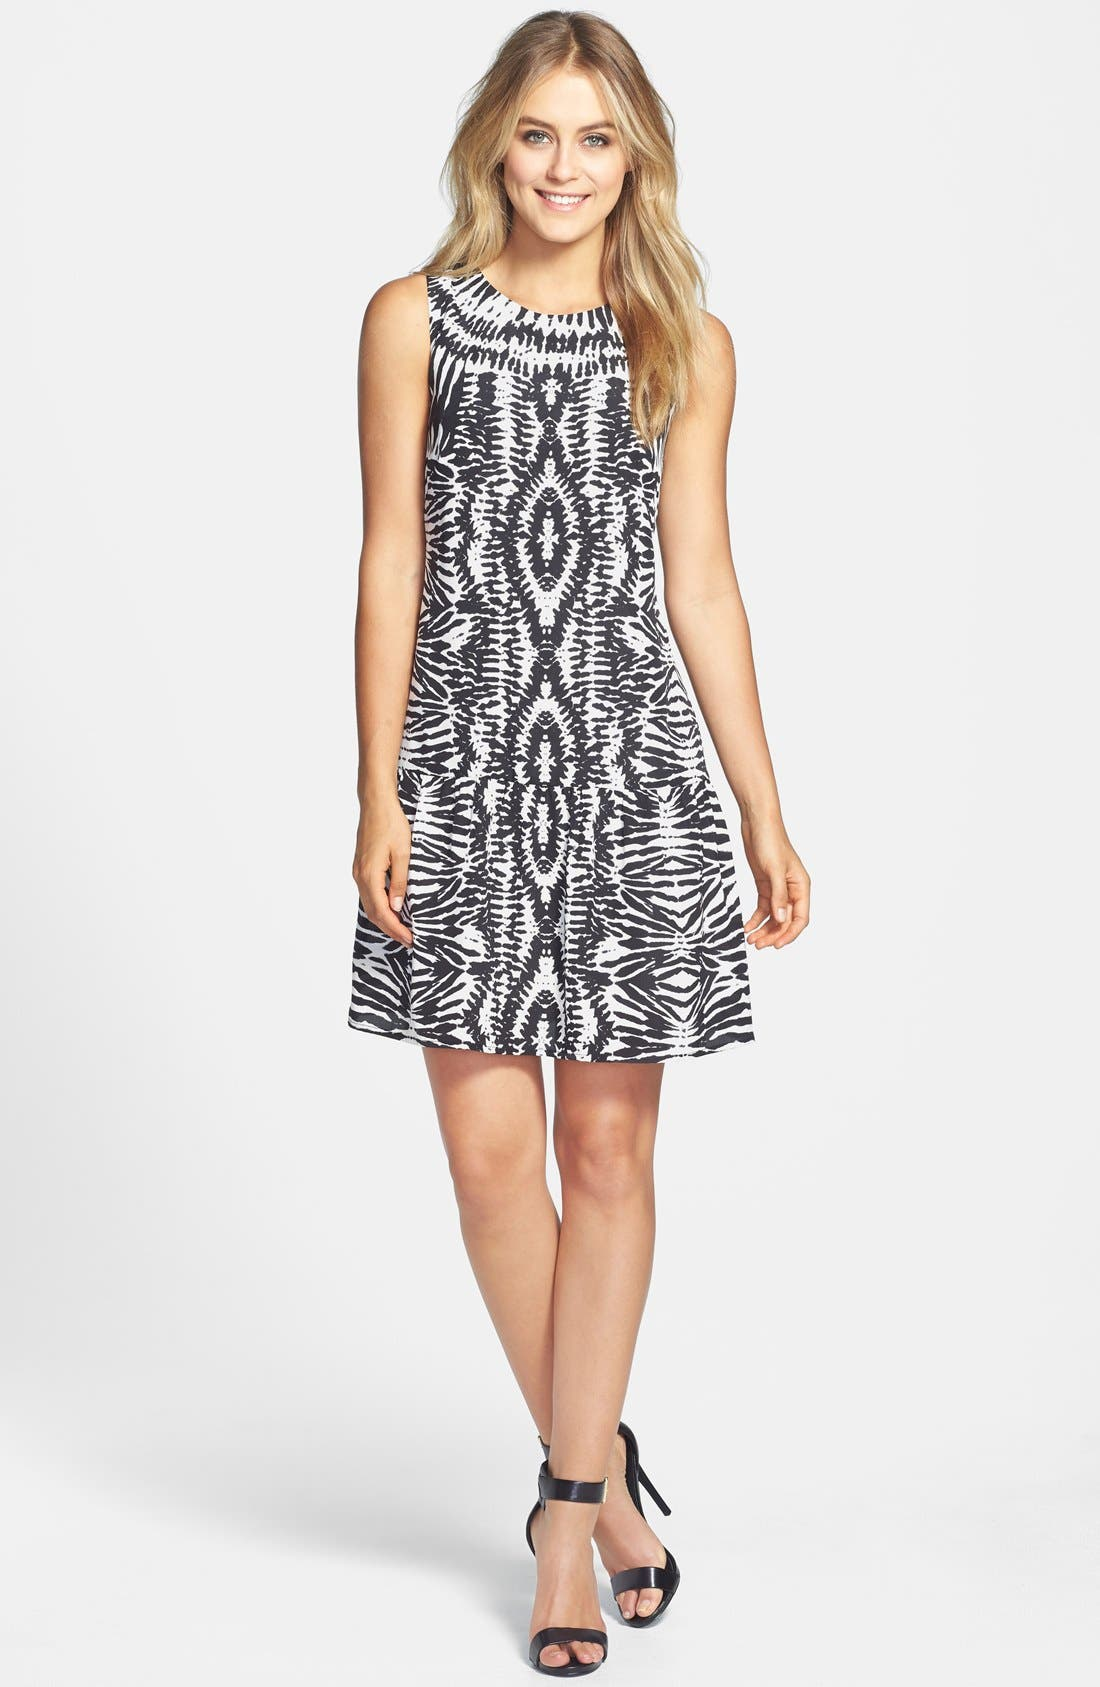 Alternate Image 1 Selected - Vince Camuto 'Tribal Impressions' Sleeveless Dress